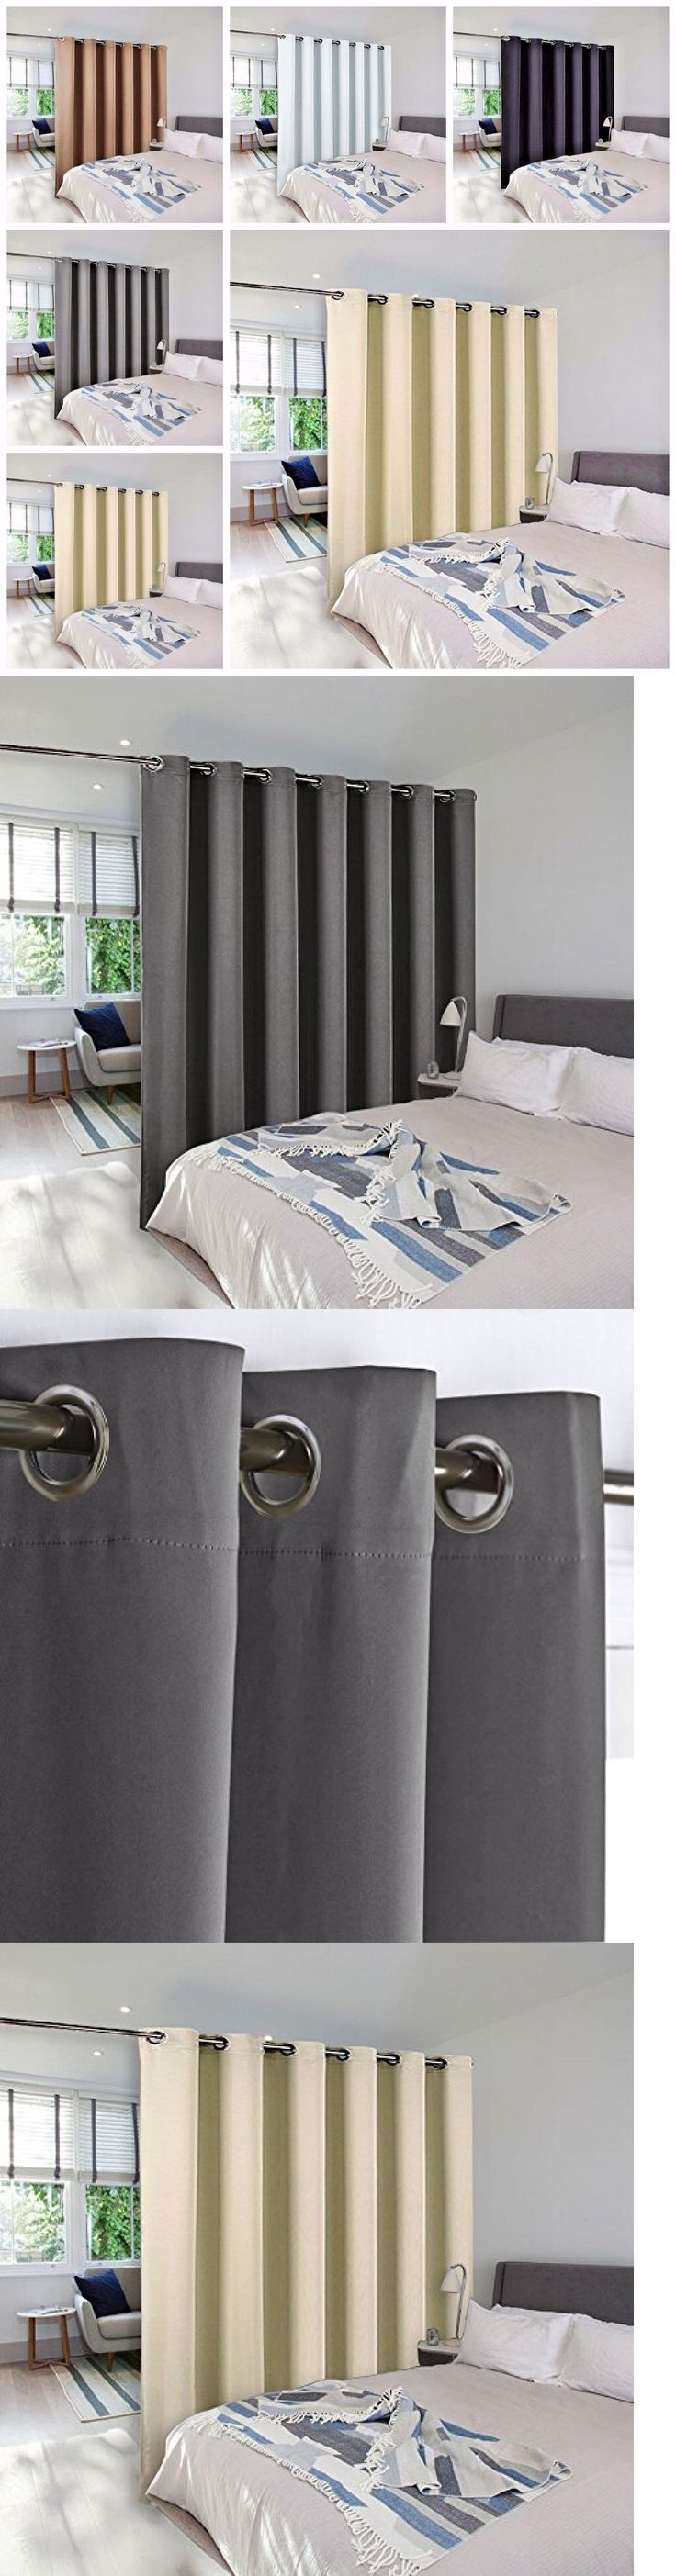 Curtains Drapes and Valances 45515: Panel Curtain Room Divider Partition Screen Grommet Blackout Curtain Panels -> BUY IT NOW ONLY: $149.99 on eBay!